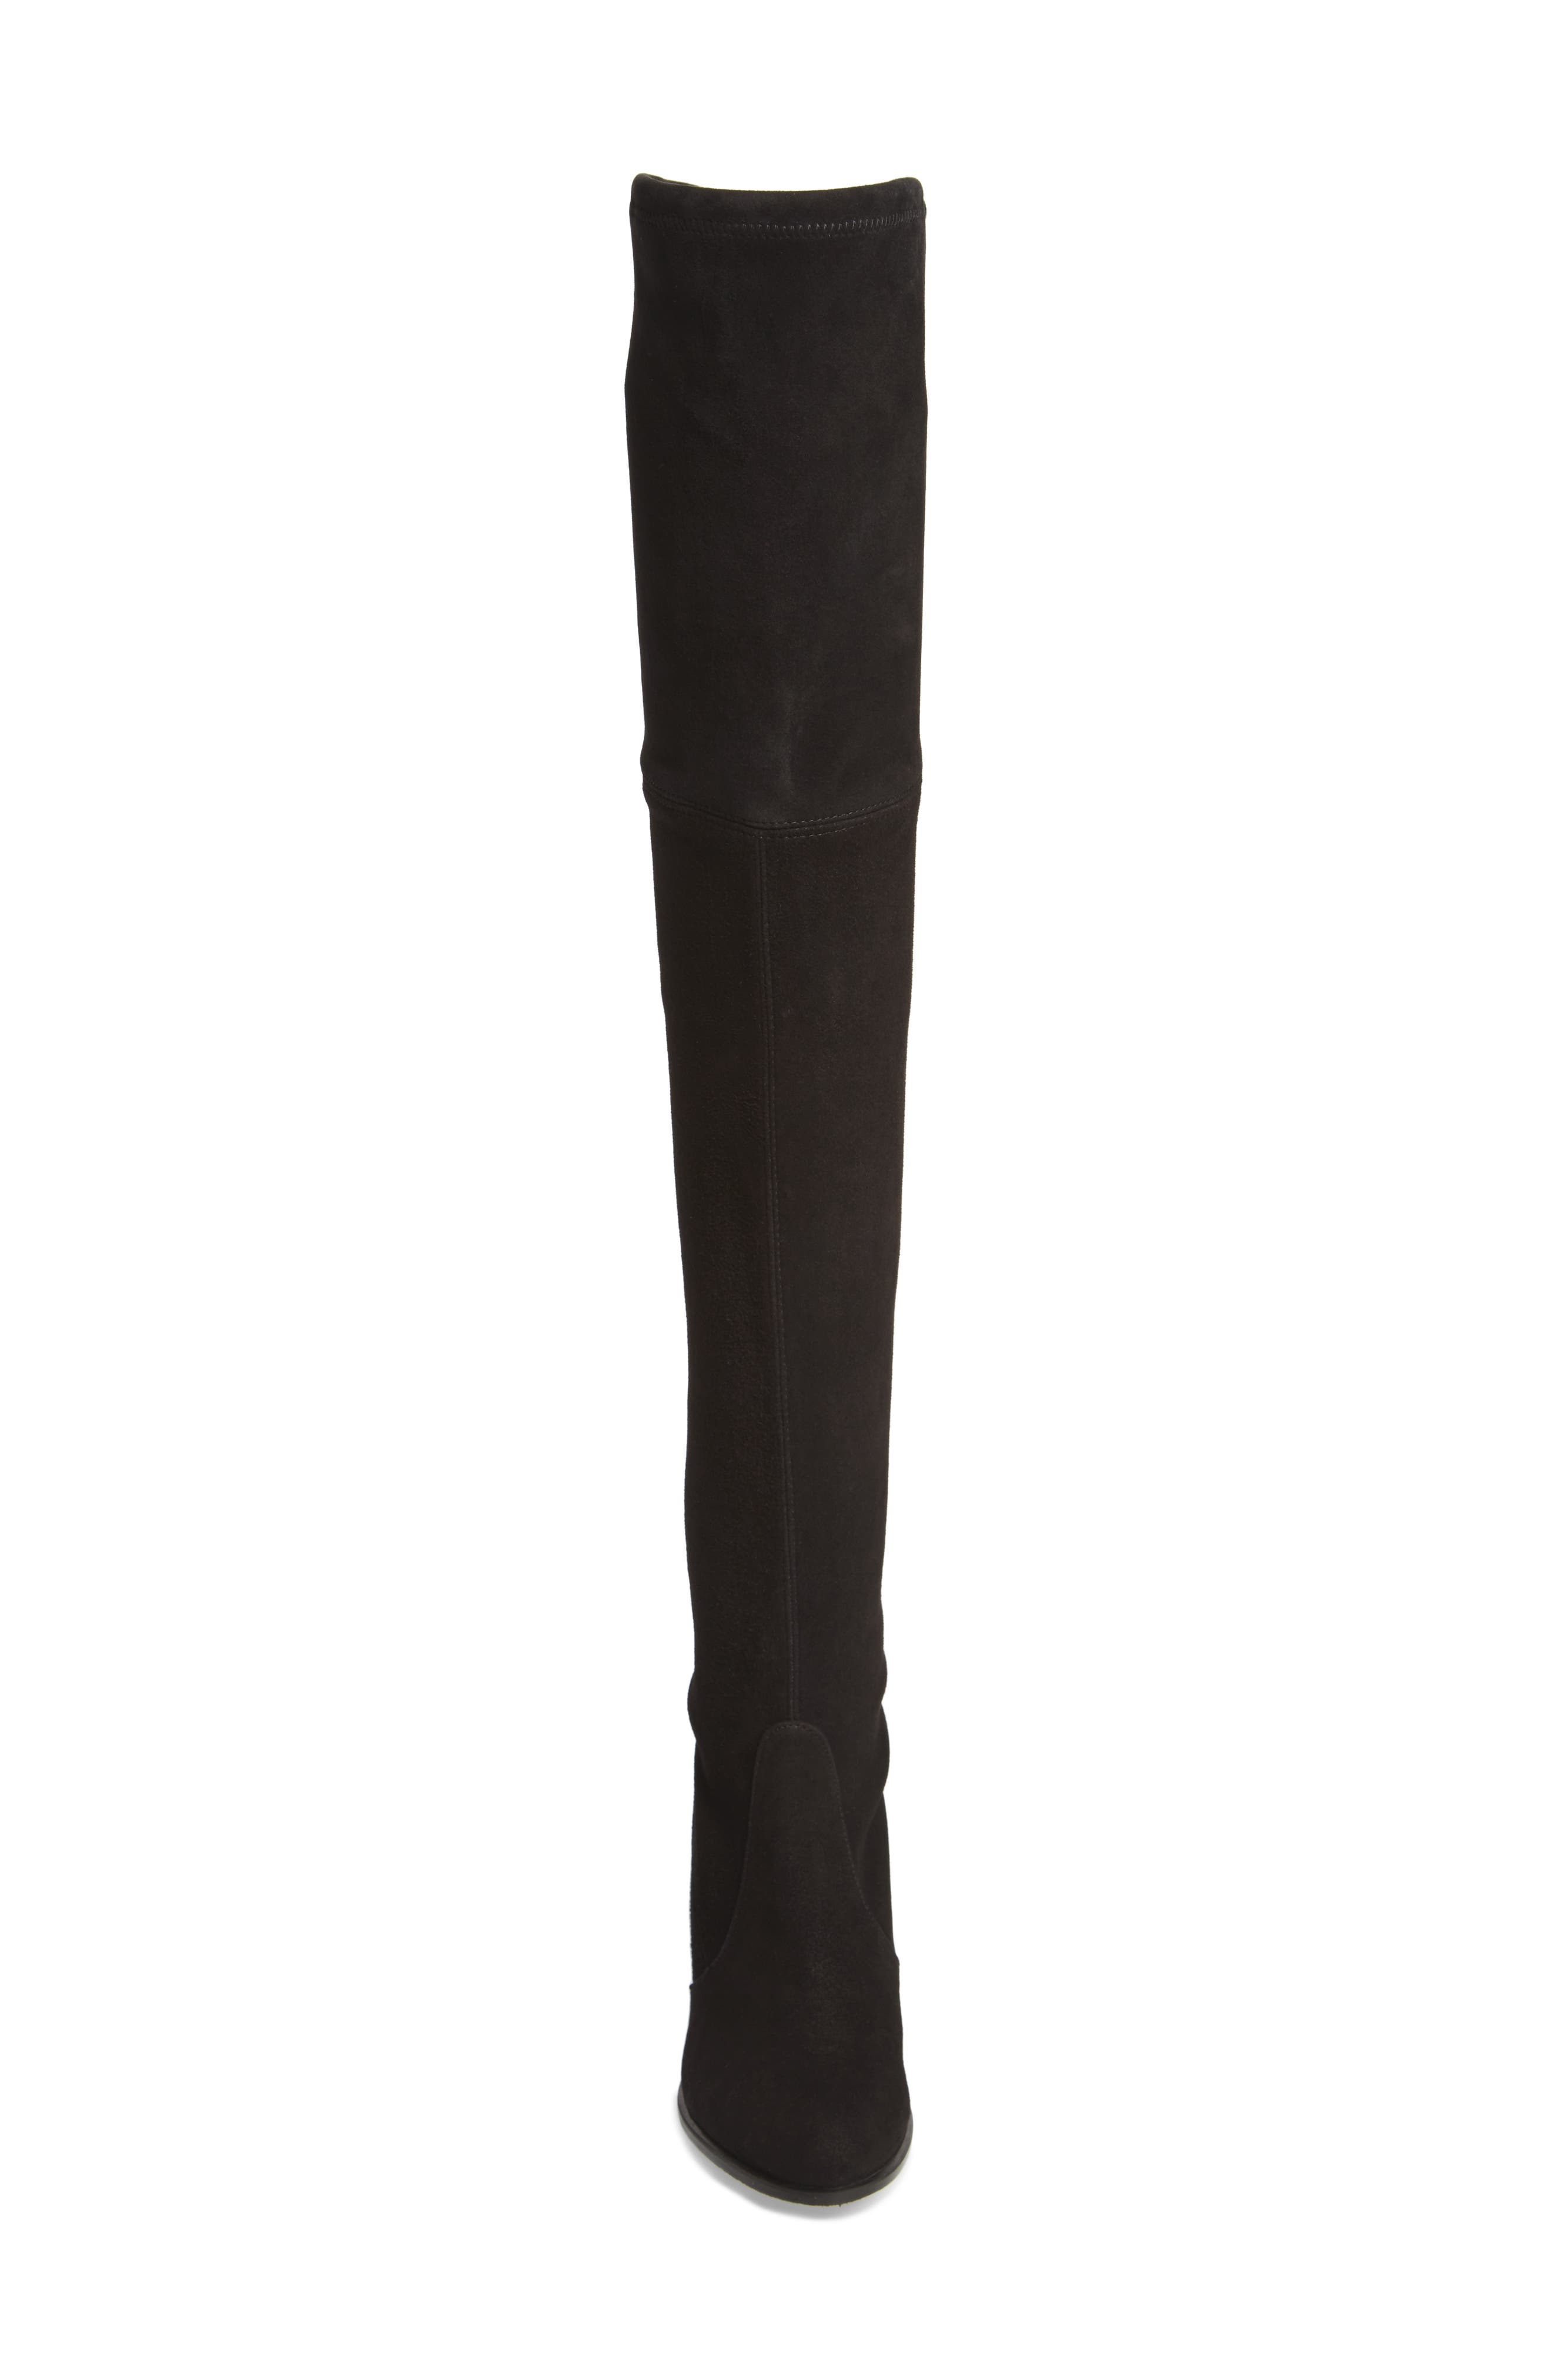 Hiline Over the Knee Boot,                             Alternate thumbnail 4, color,                             Black Suede